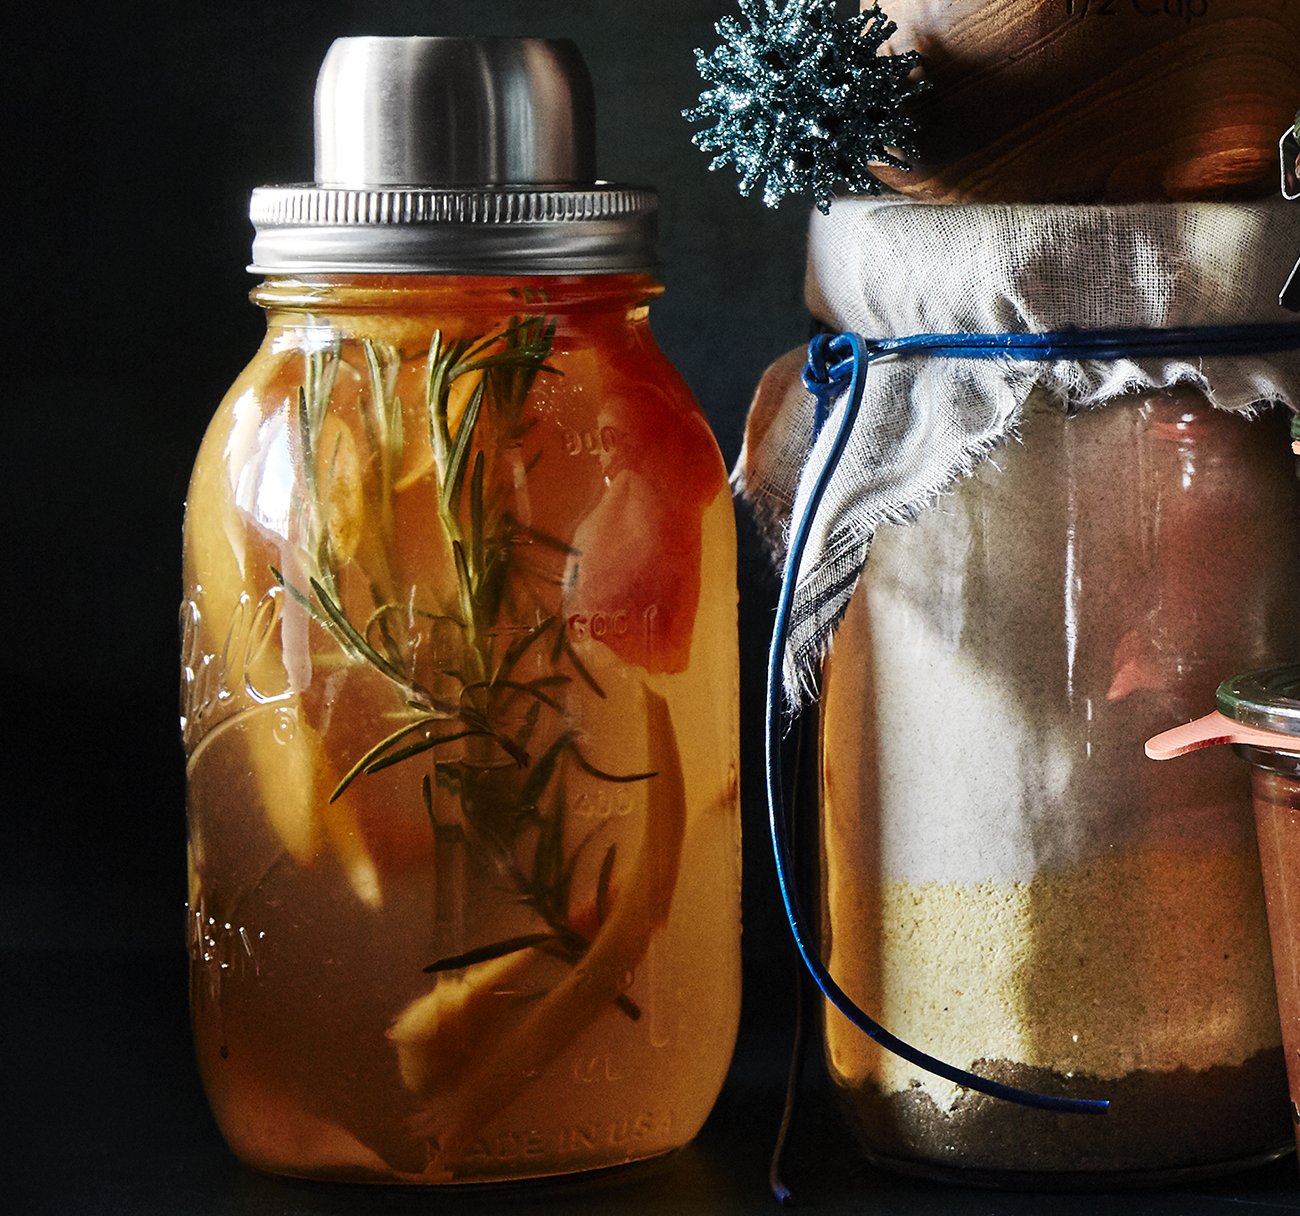 Food gift: Rosemary, Ginger, And Grapefruit Syrup